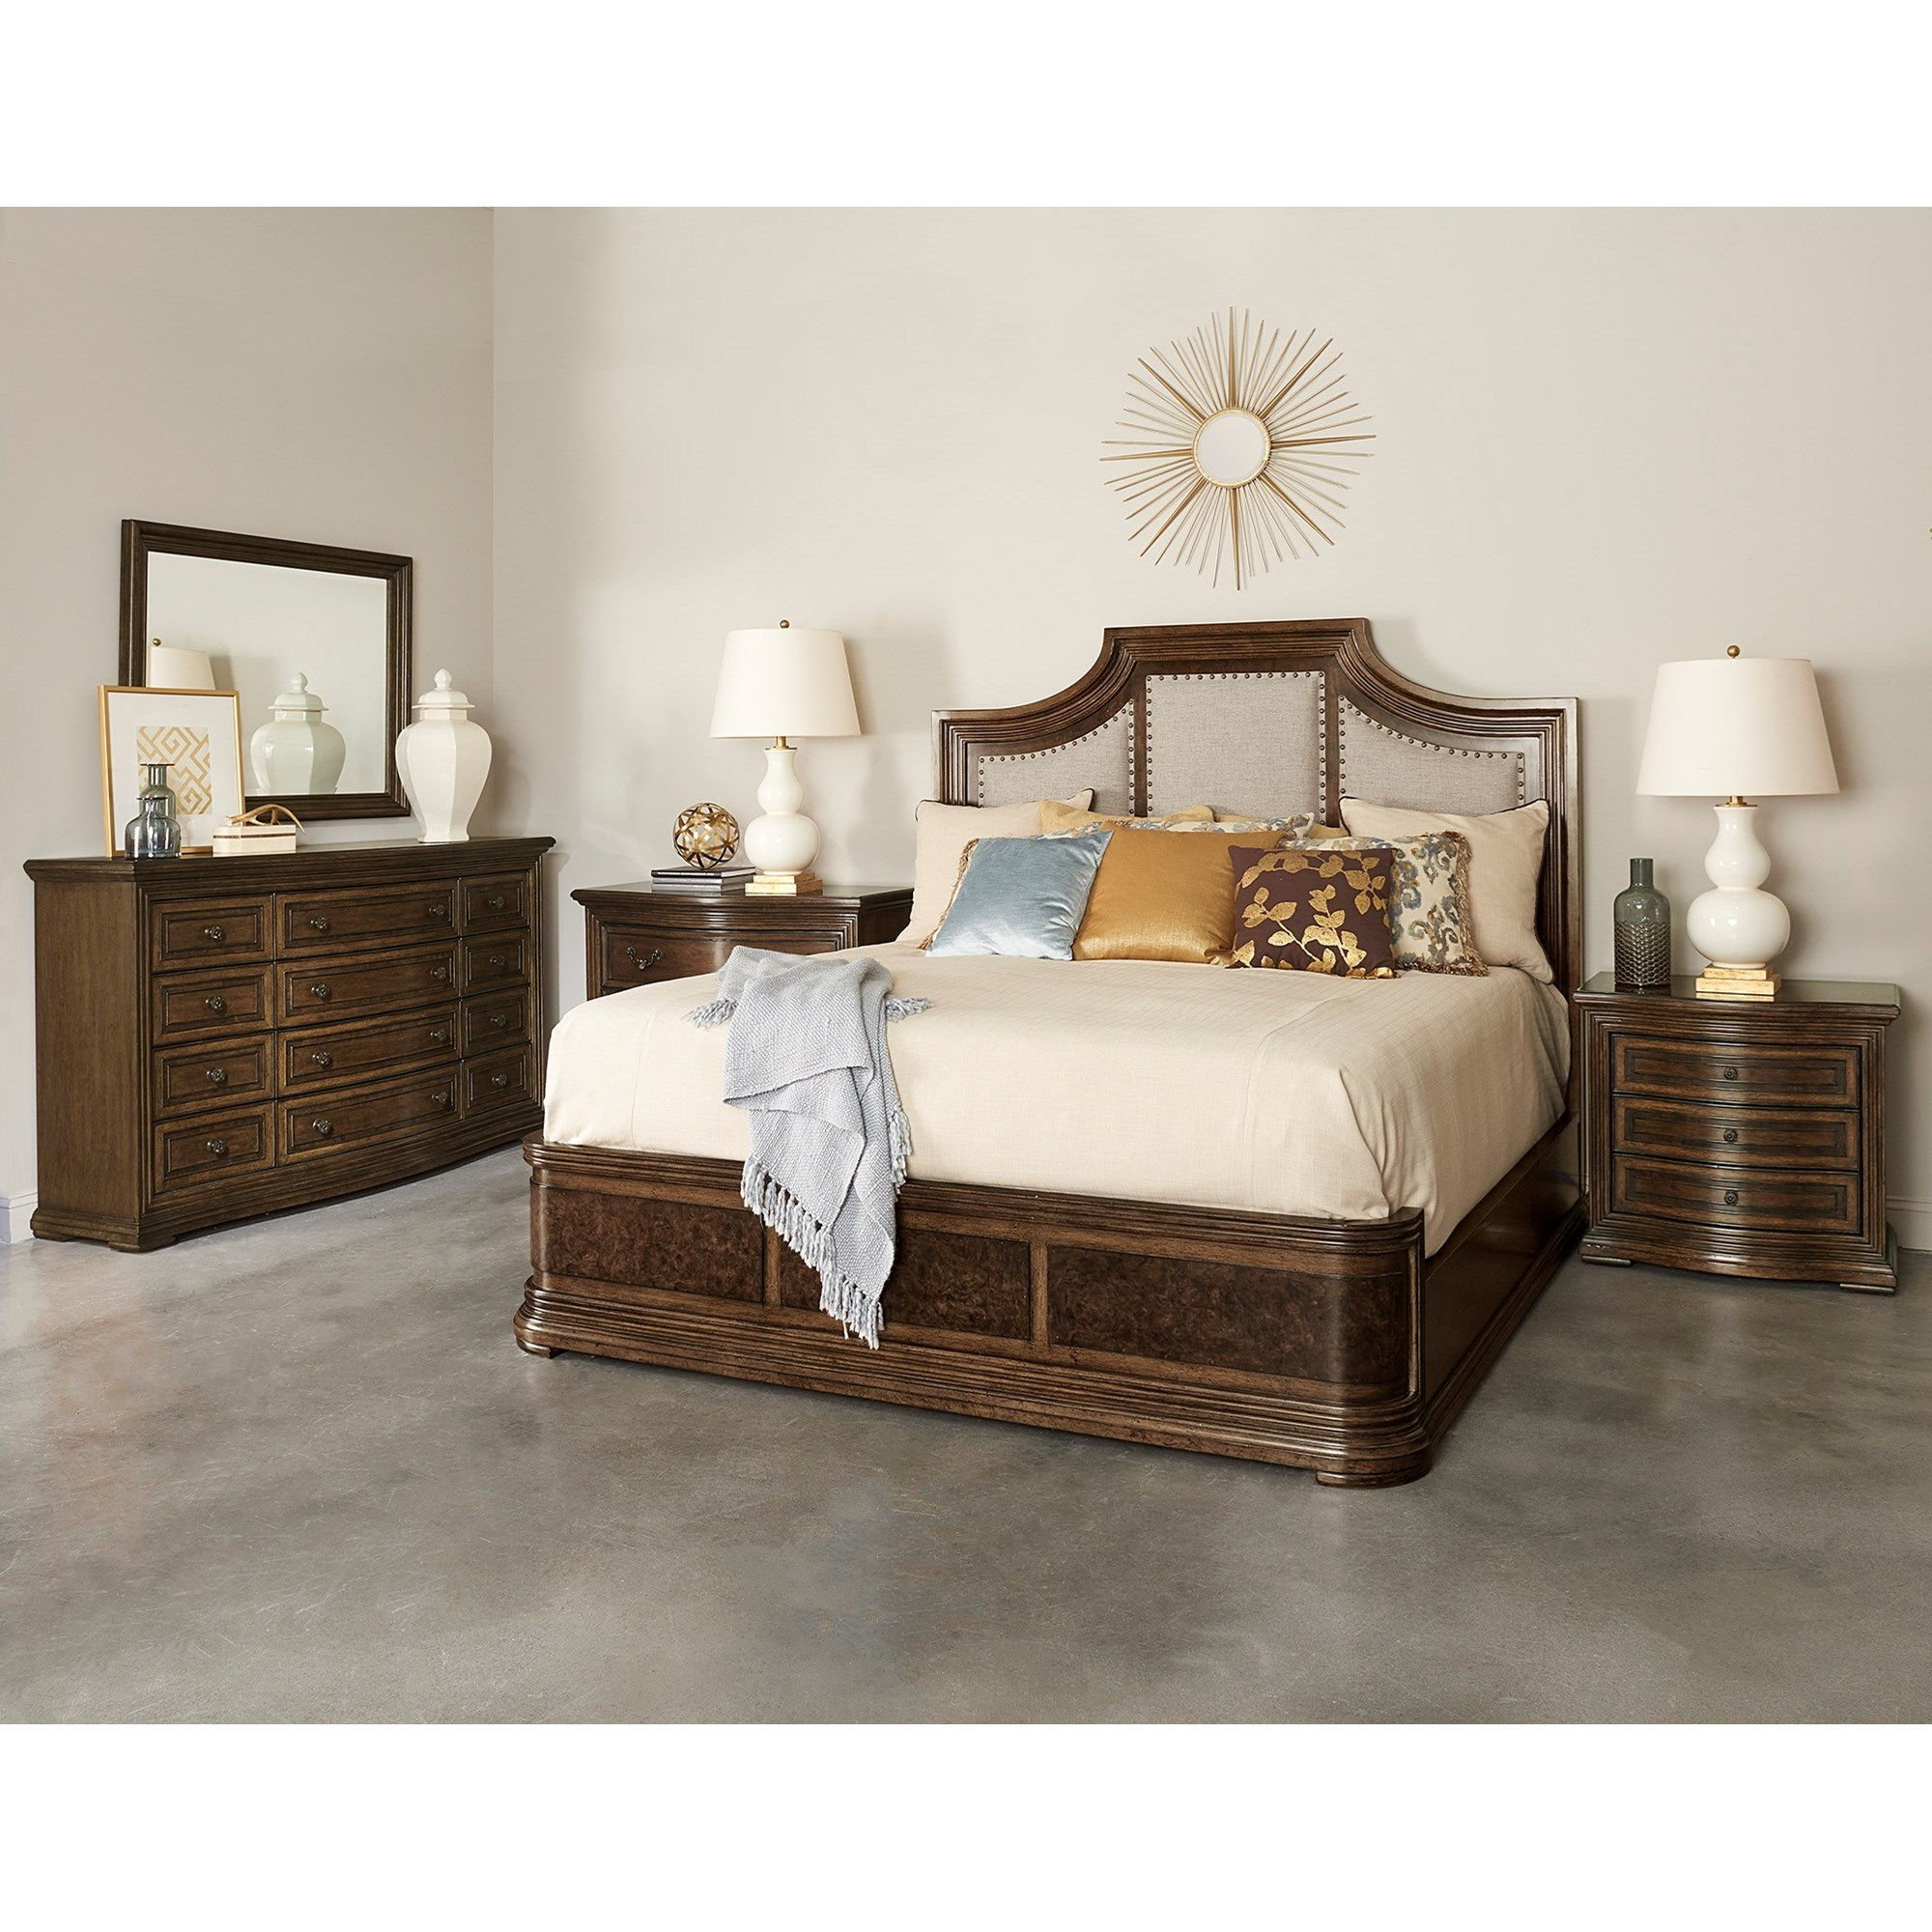 Kingsport  King Bedroom Group by A.R.T. Furniture Inc at Michael Alan Furniture & Design